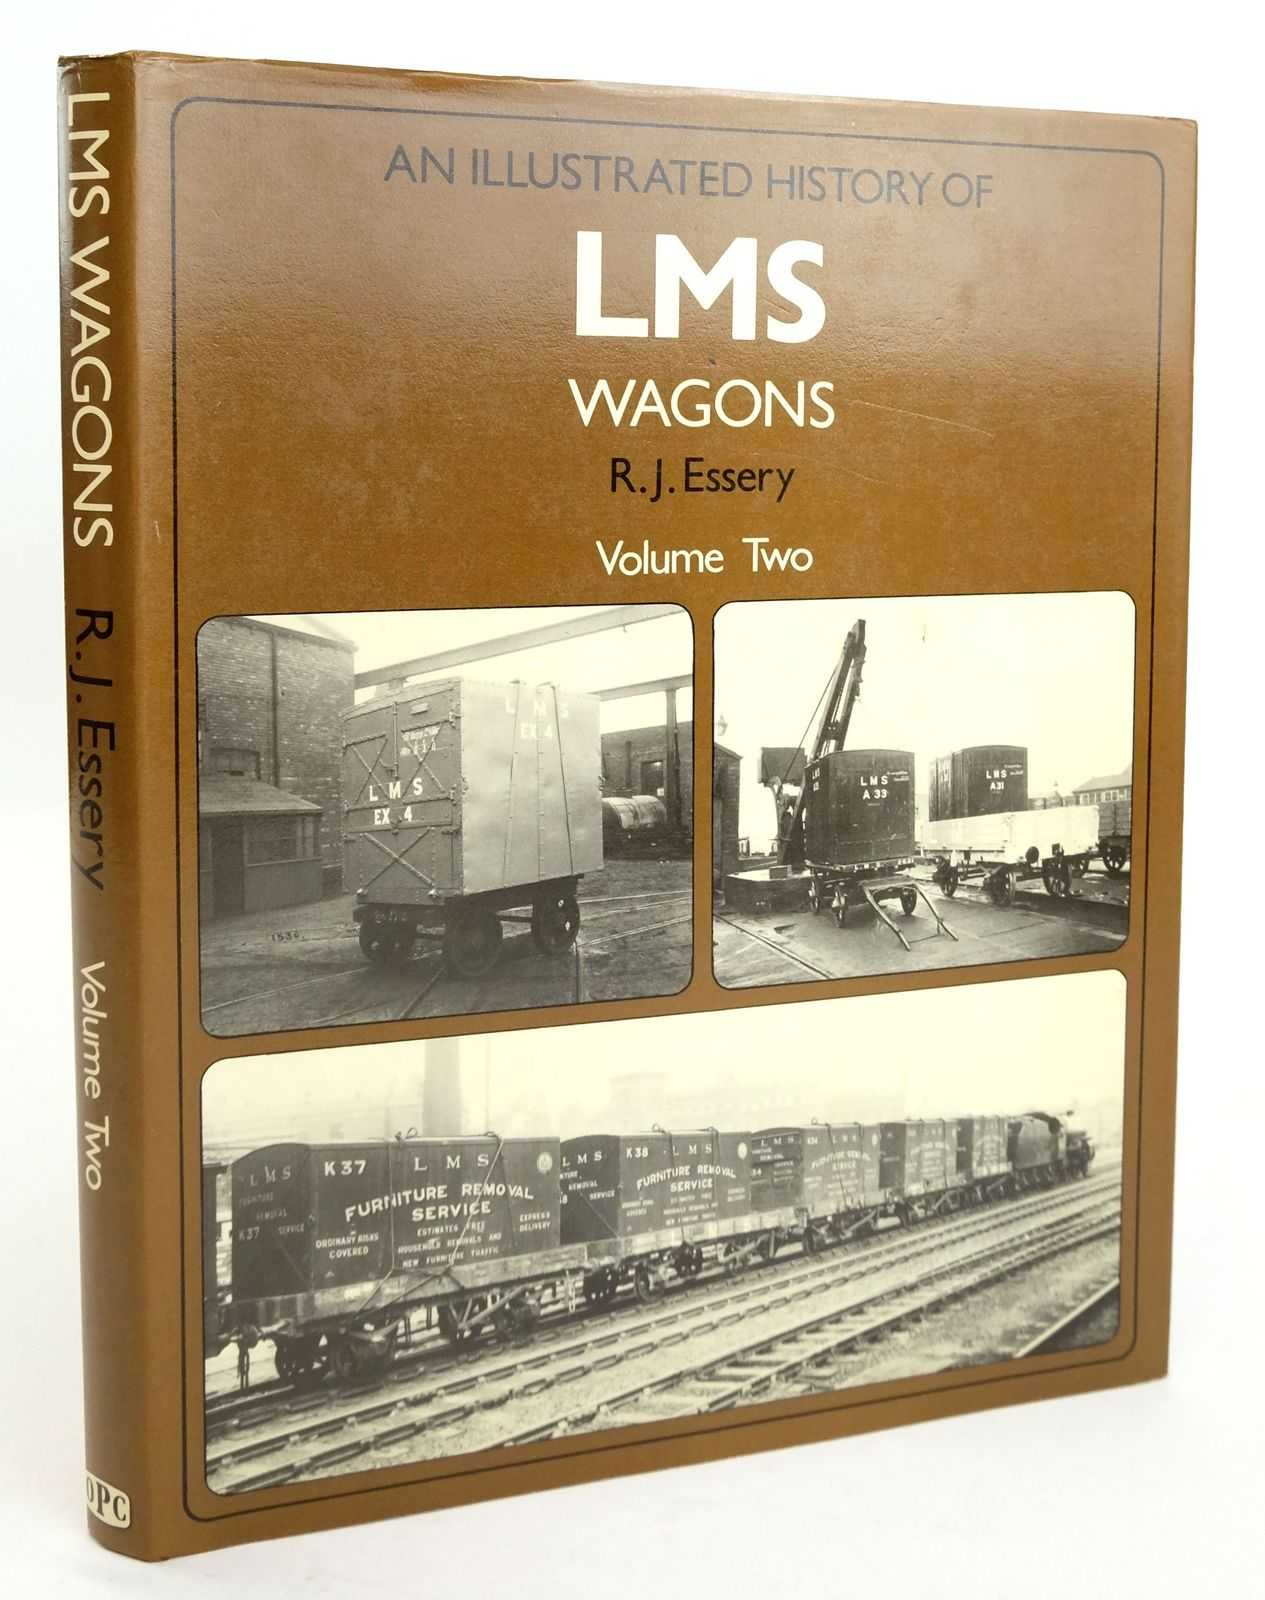 Photo of AN ILLUSTRATED HISTORY OF LMS WAGONS VOLUME TWO written by Essery, R.J. published by Oxford Publishing (STOCK CODE: 1820190)  for sale by Stella & Rose's Books